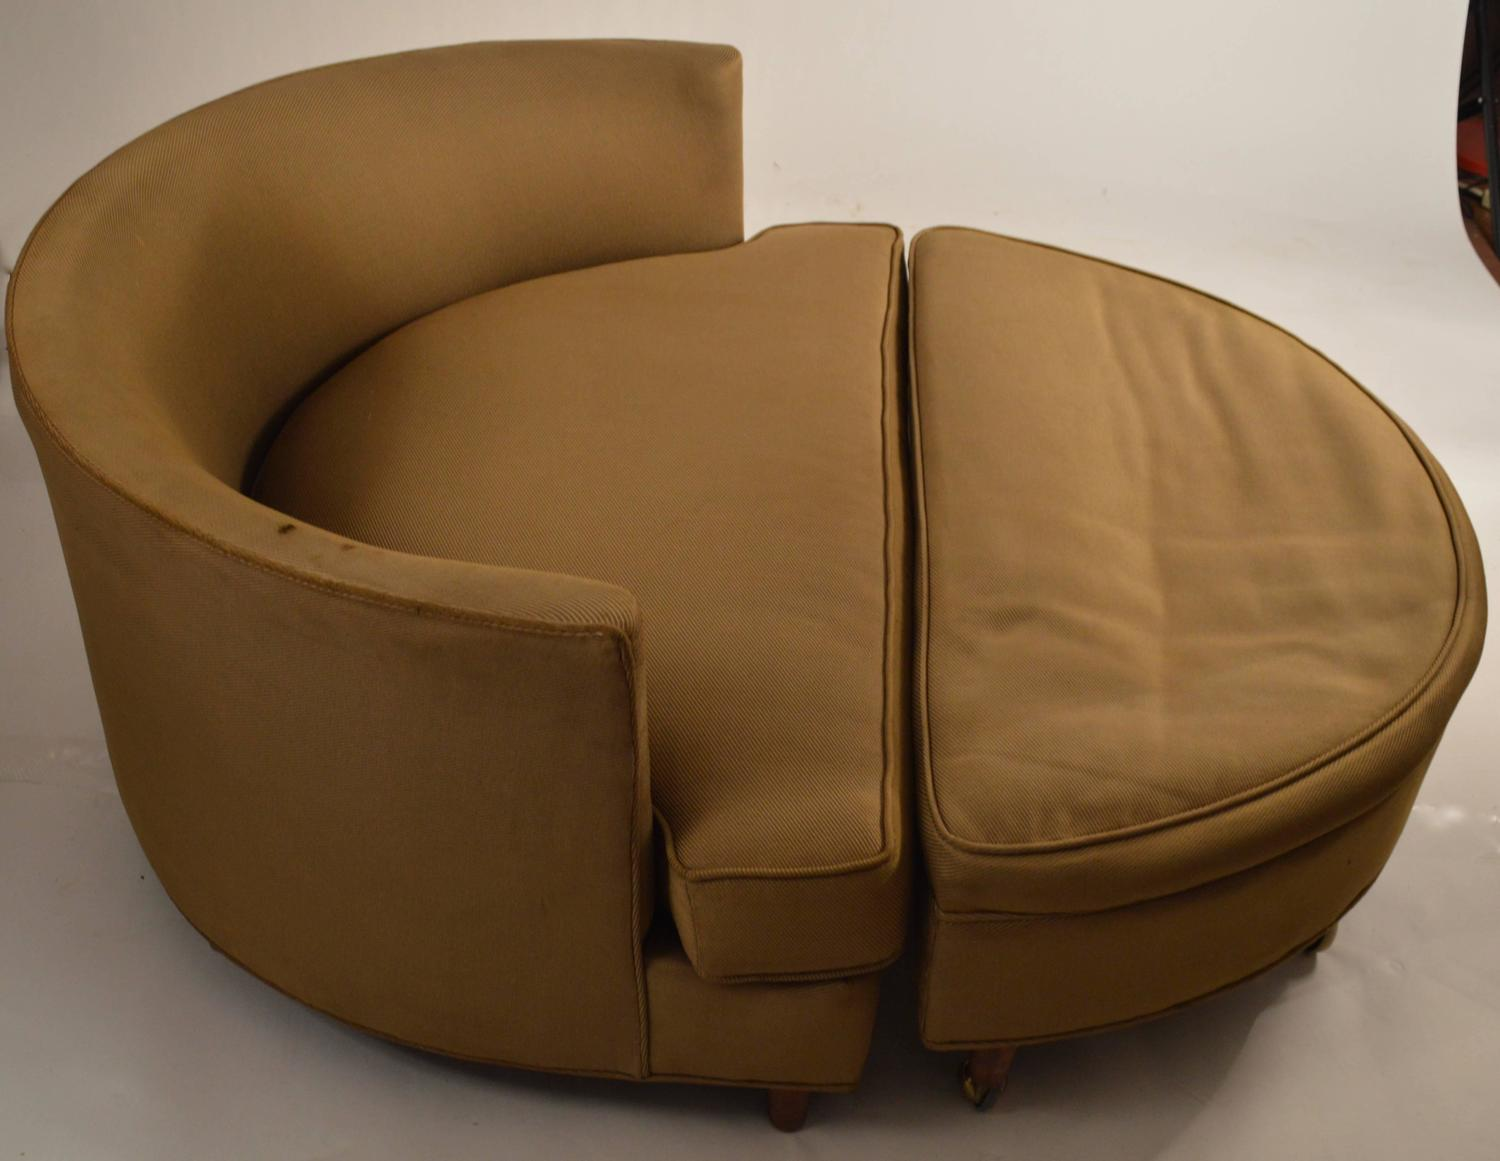 circular chairs for sale chair booster seat kmart large and ottoman after pearsall